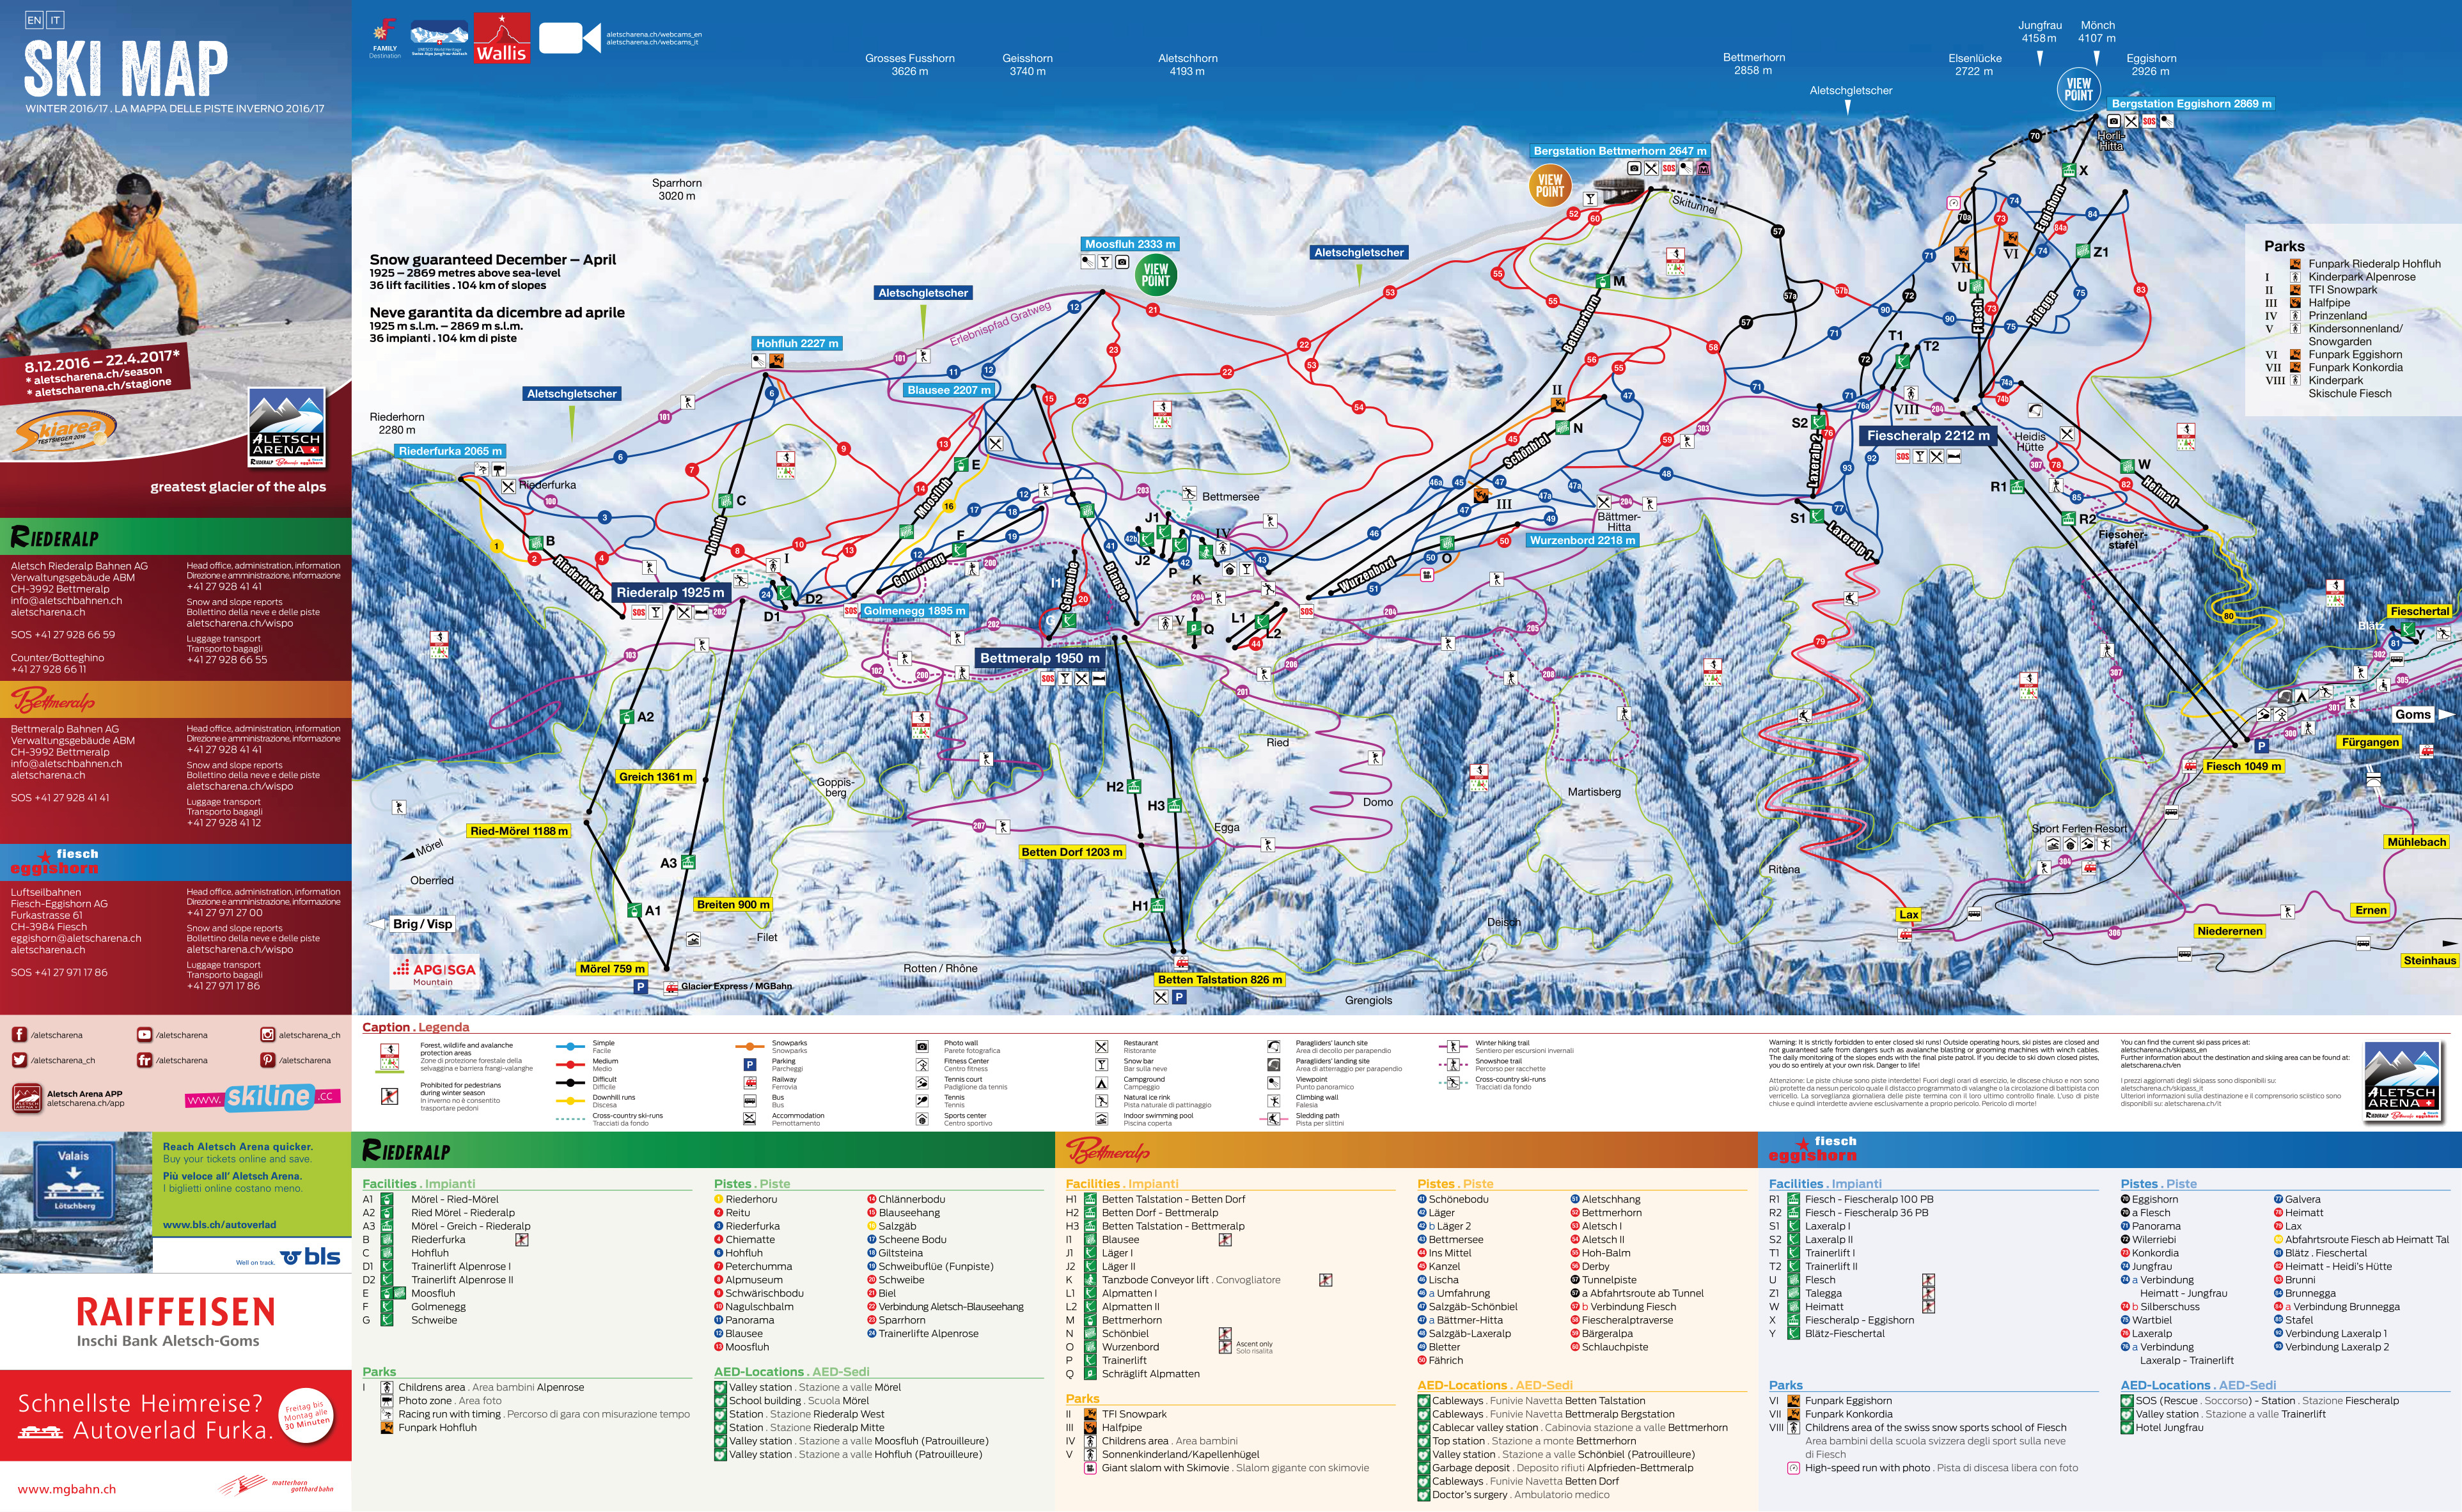 google maps map api with 990 on 315 moreover Downhill as well Travel Bormio Map in addition 163 furthermore 366.